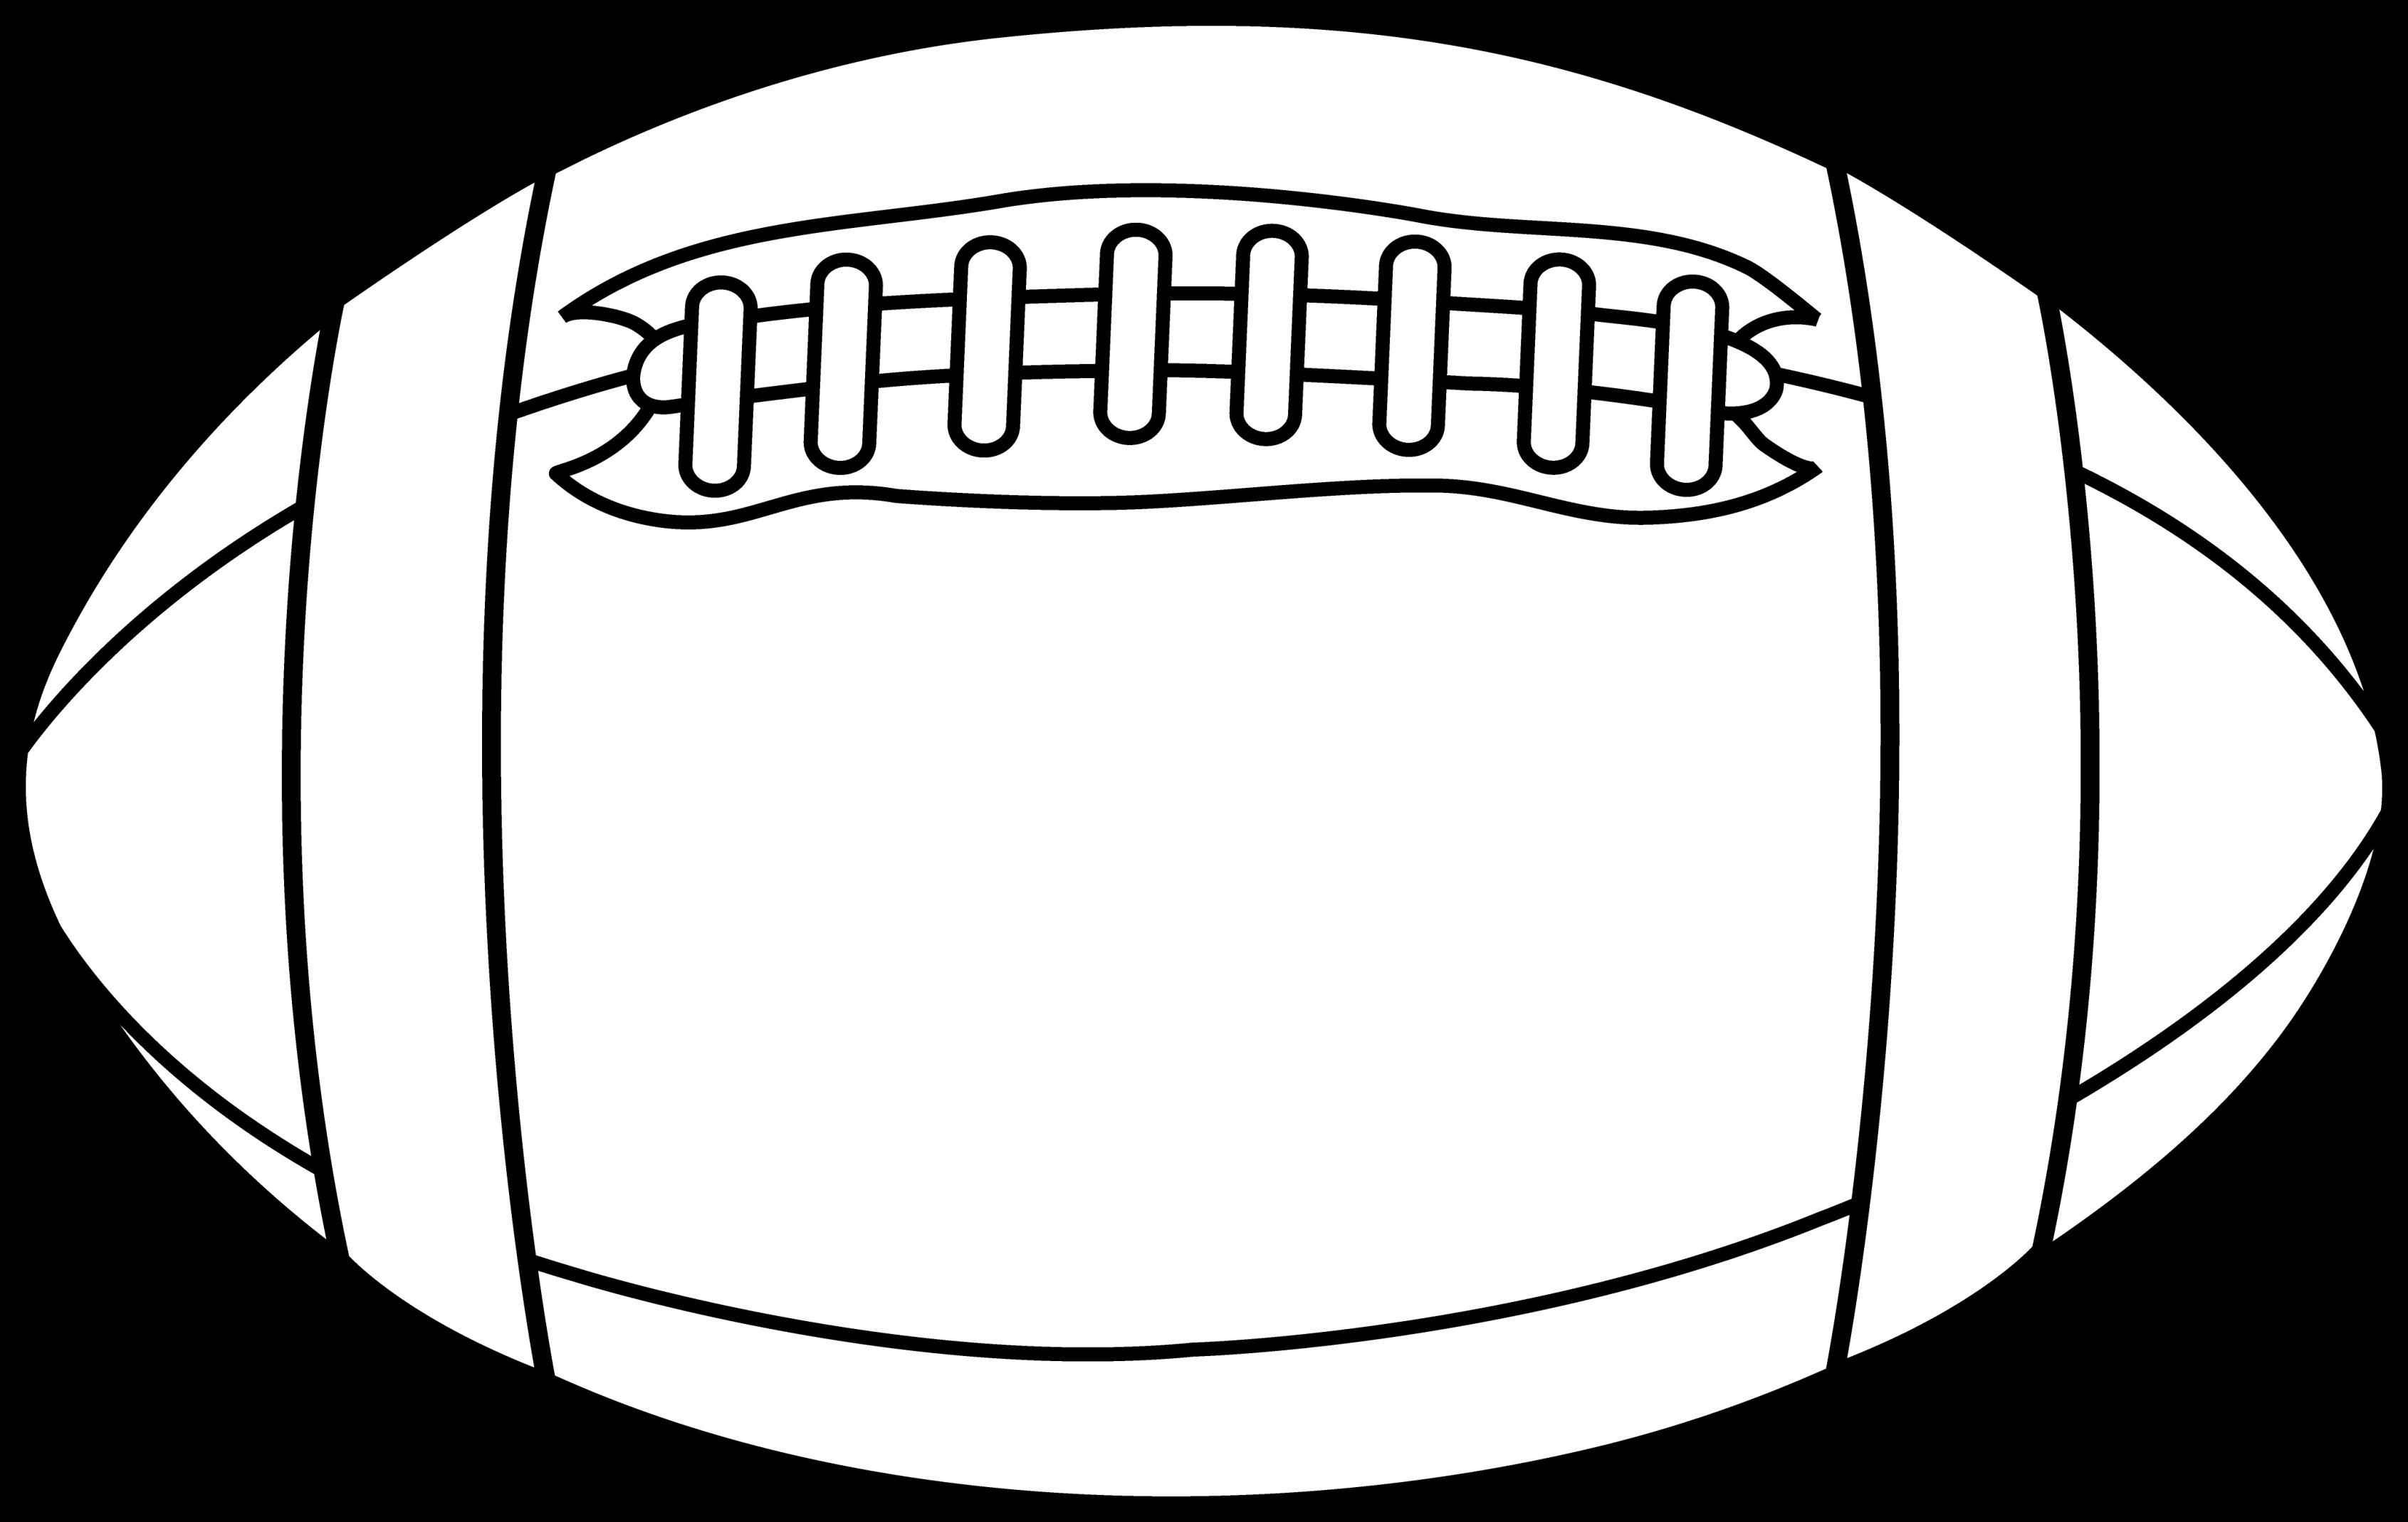 Trend Blank Football Helmet Template Printable Surprising Outline In - Free Printable Football Templates